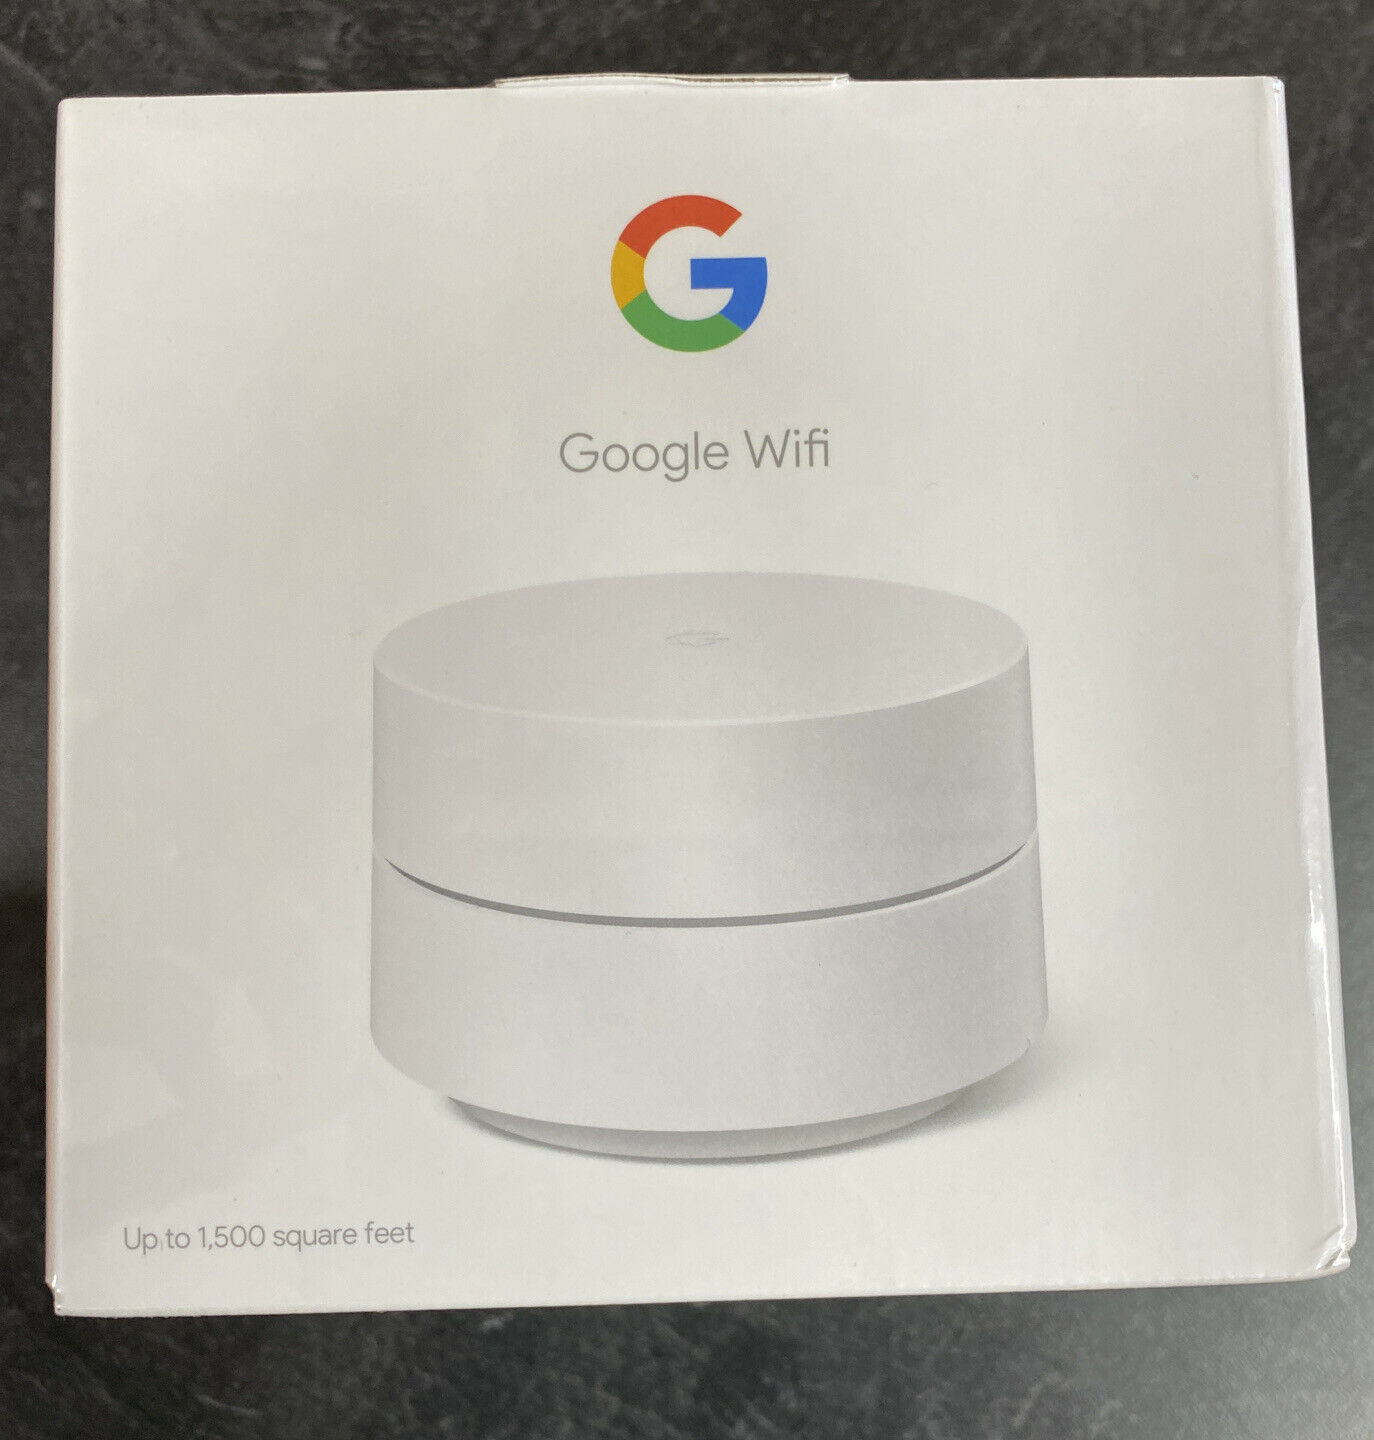 New Google WiFi Mesh Network System Router Point GA02430-US SEALED. Buy it now for 69.00